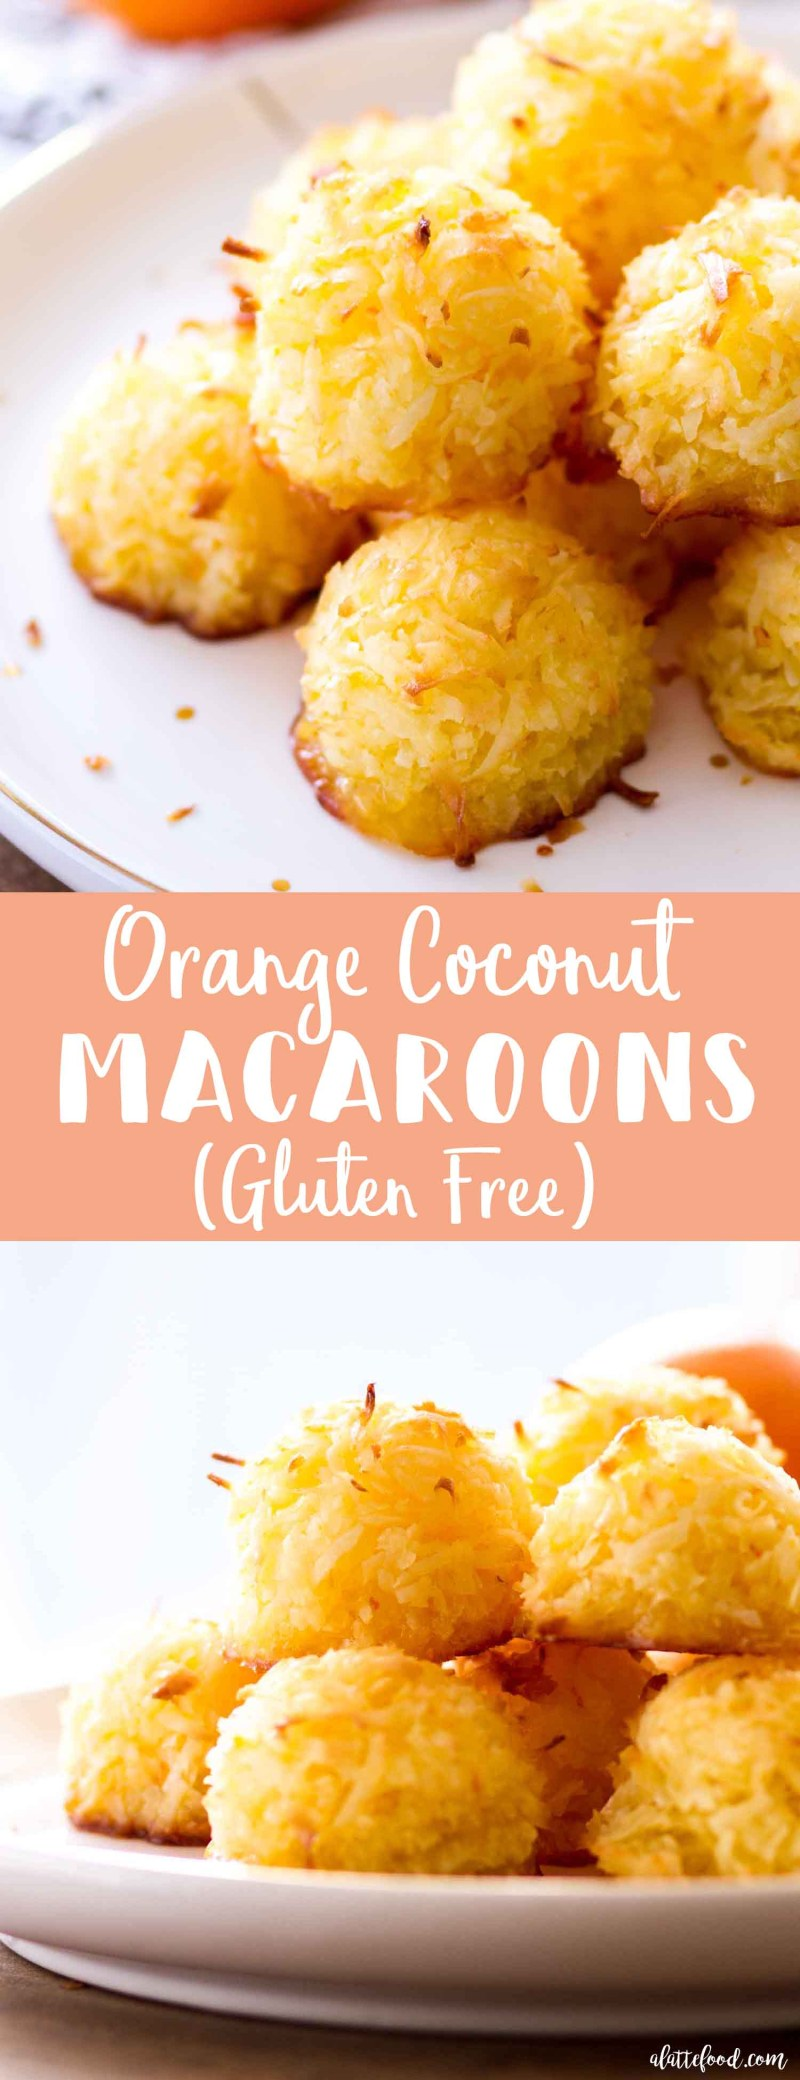 These homemade Orange Coconut Macaroons are sweet, simple, and such a perfect spring or summer dessert!This Orange Coconut Macaroon recipe is made with only a few ingredients, including fresh orange zest and orange juice! Whole eggs and a little bit of butter make these chewy coconut macaroons extra rich. Plus, these easy coconut macaroons are naturally gluten free!